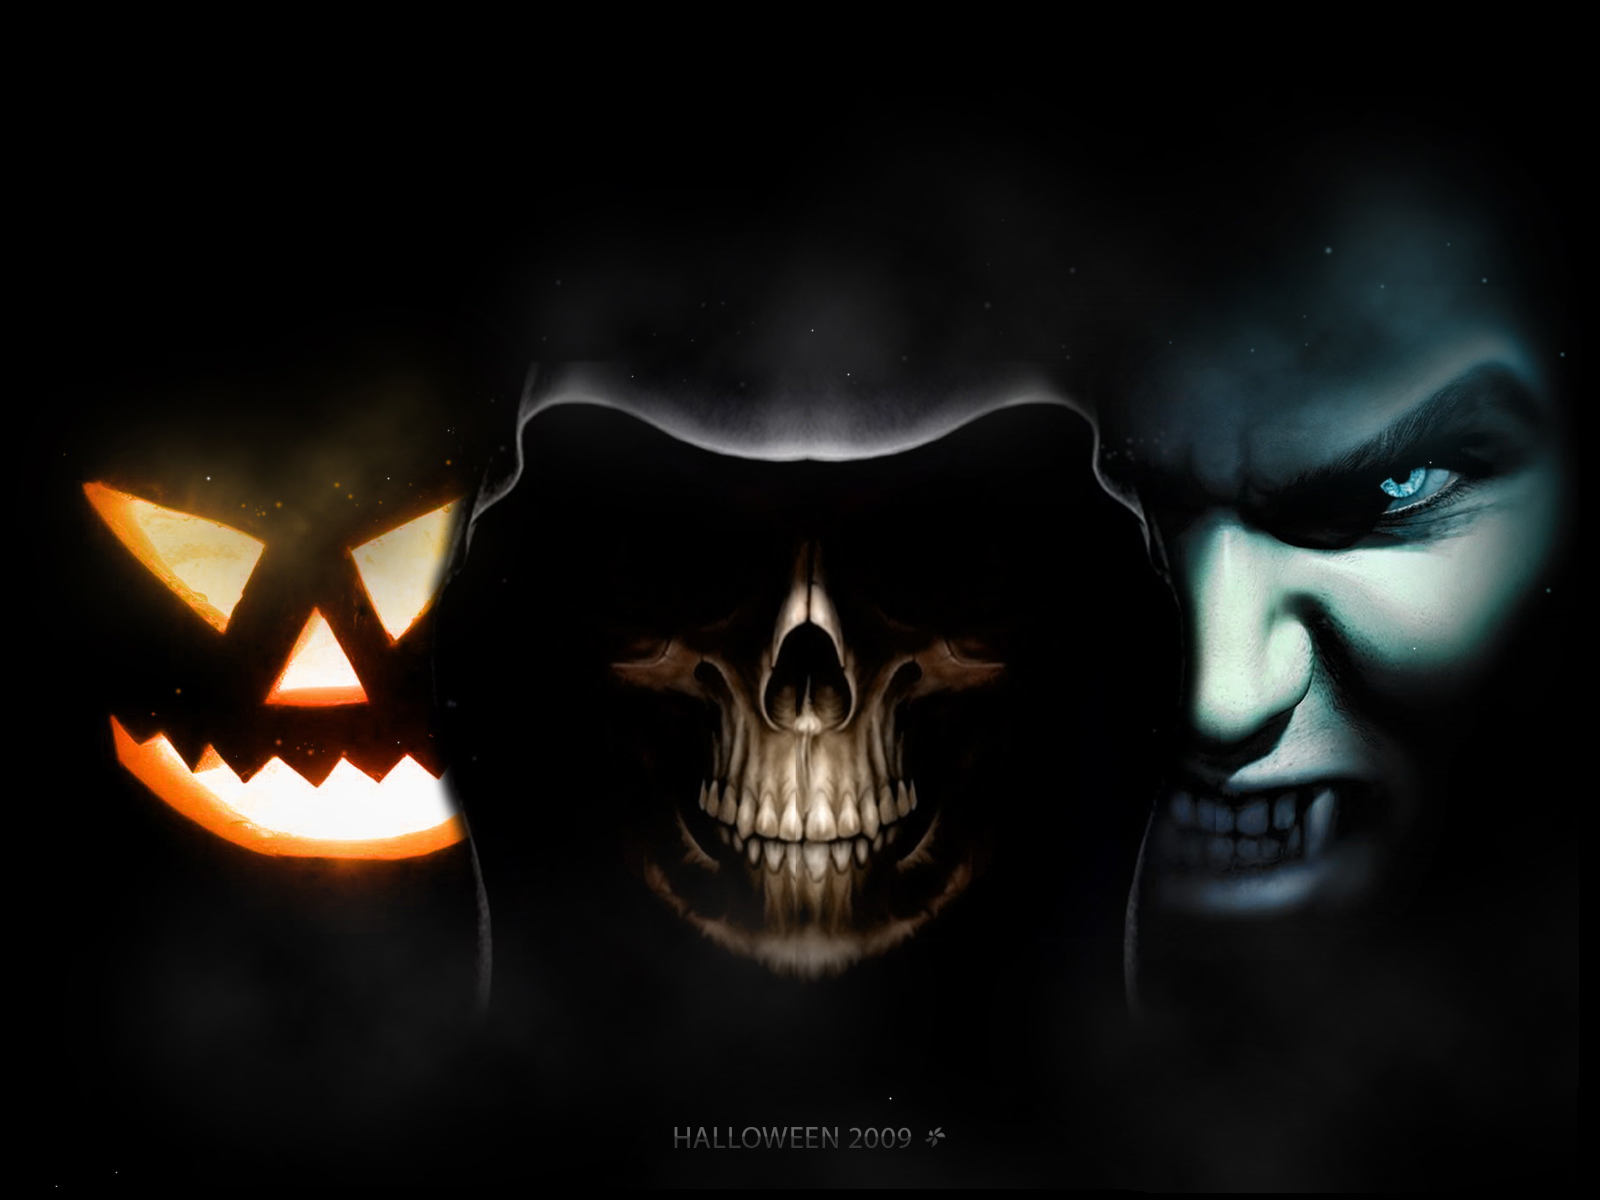 HALLOWEEN WALLPAPERS 2012 | Wallpaper for holiday